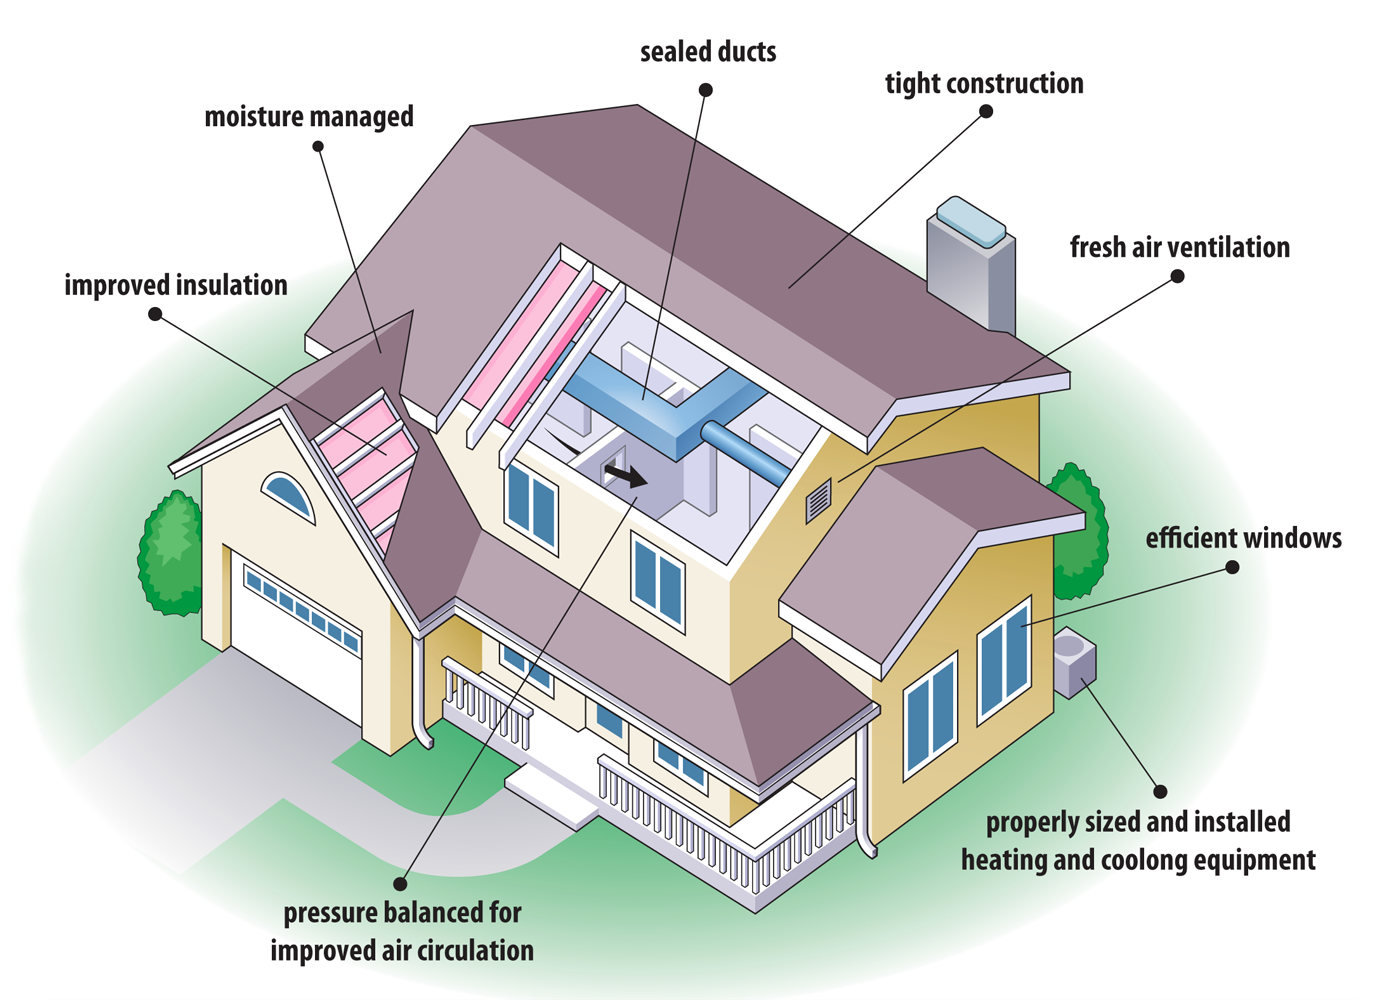 energy efficient house plans diagram showing the various aspects